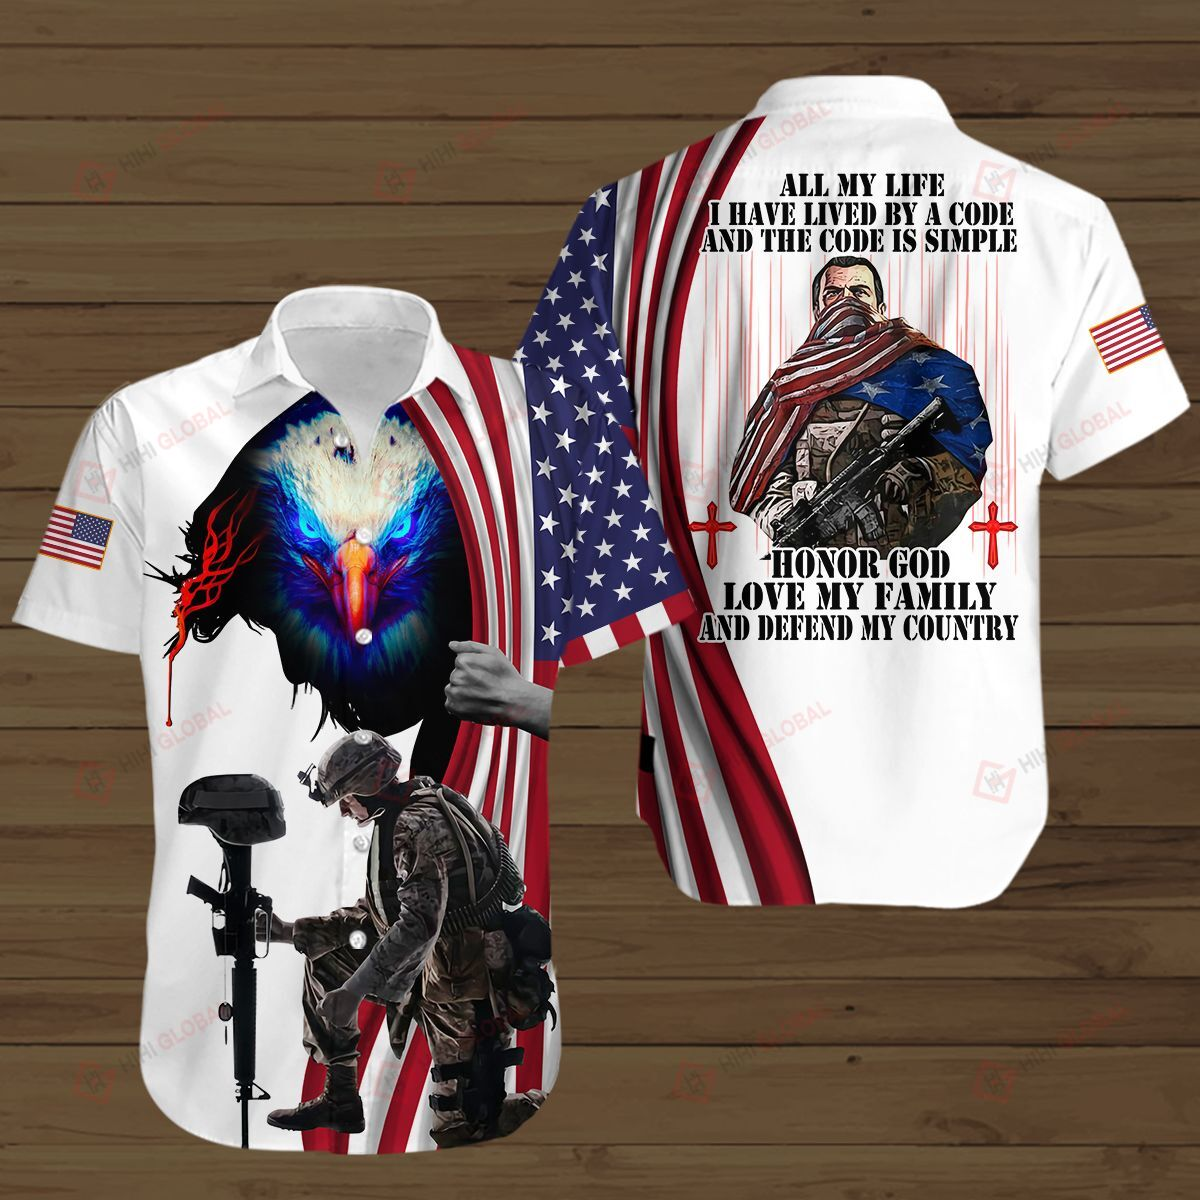 American Soldier Lived By A Code Honor God Love My Family and Defend My Country White 3D Shirt